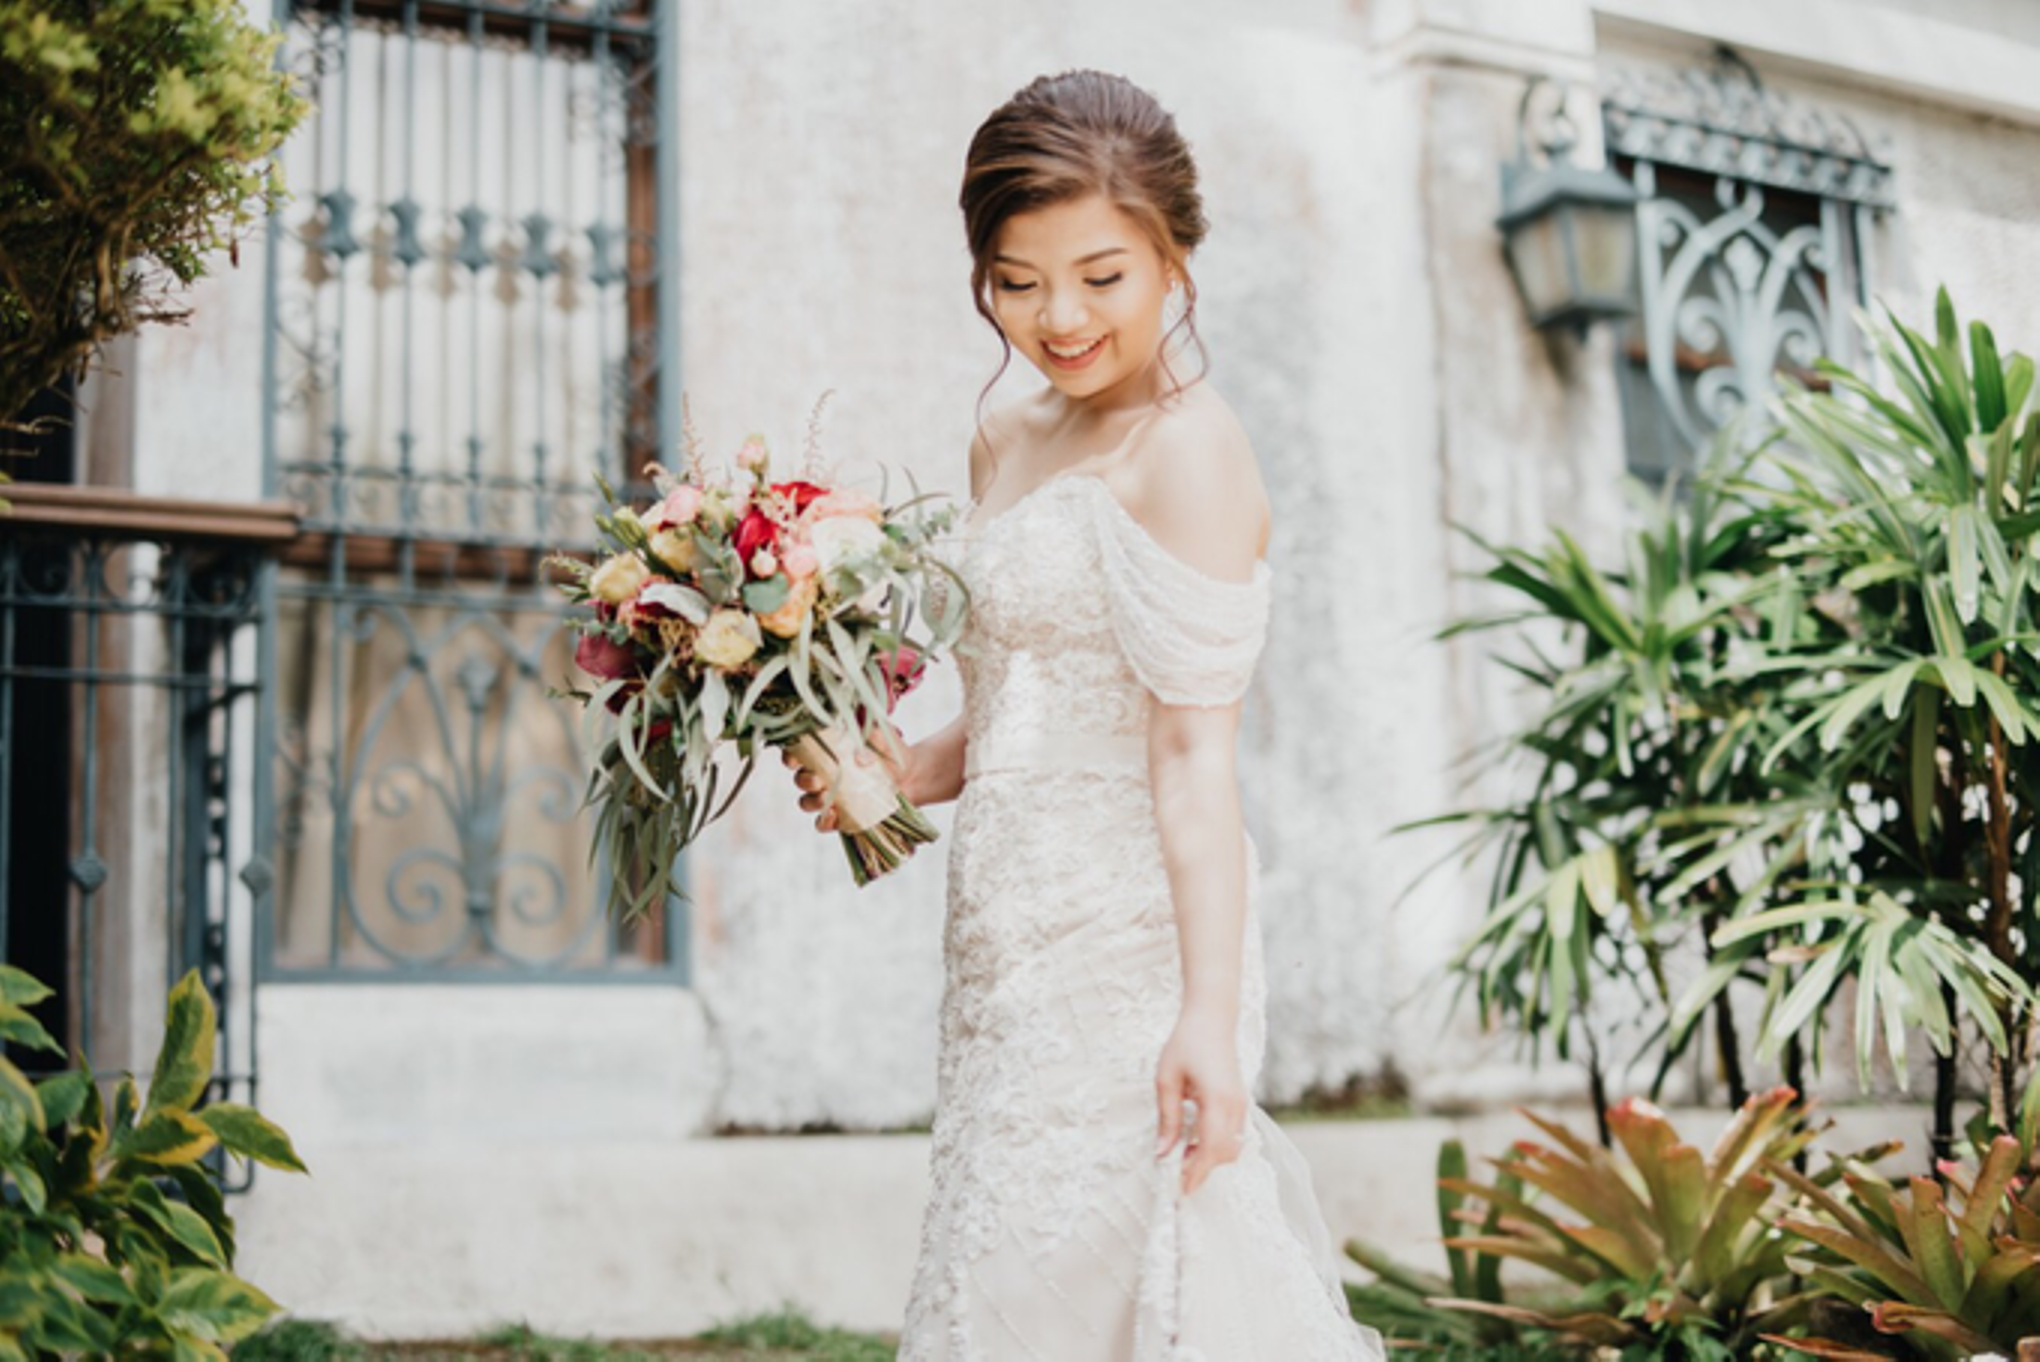 Wedding Gown Prices Philippines Mauve Affordable Wedding Gown Suppliers In The Philippin In 2020 Affordable Wedding Gown Wedding Dresses Chicago Budget Wedding Gowns